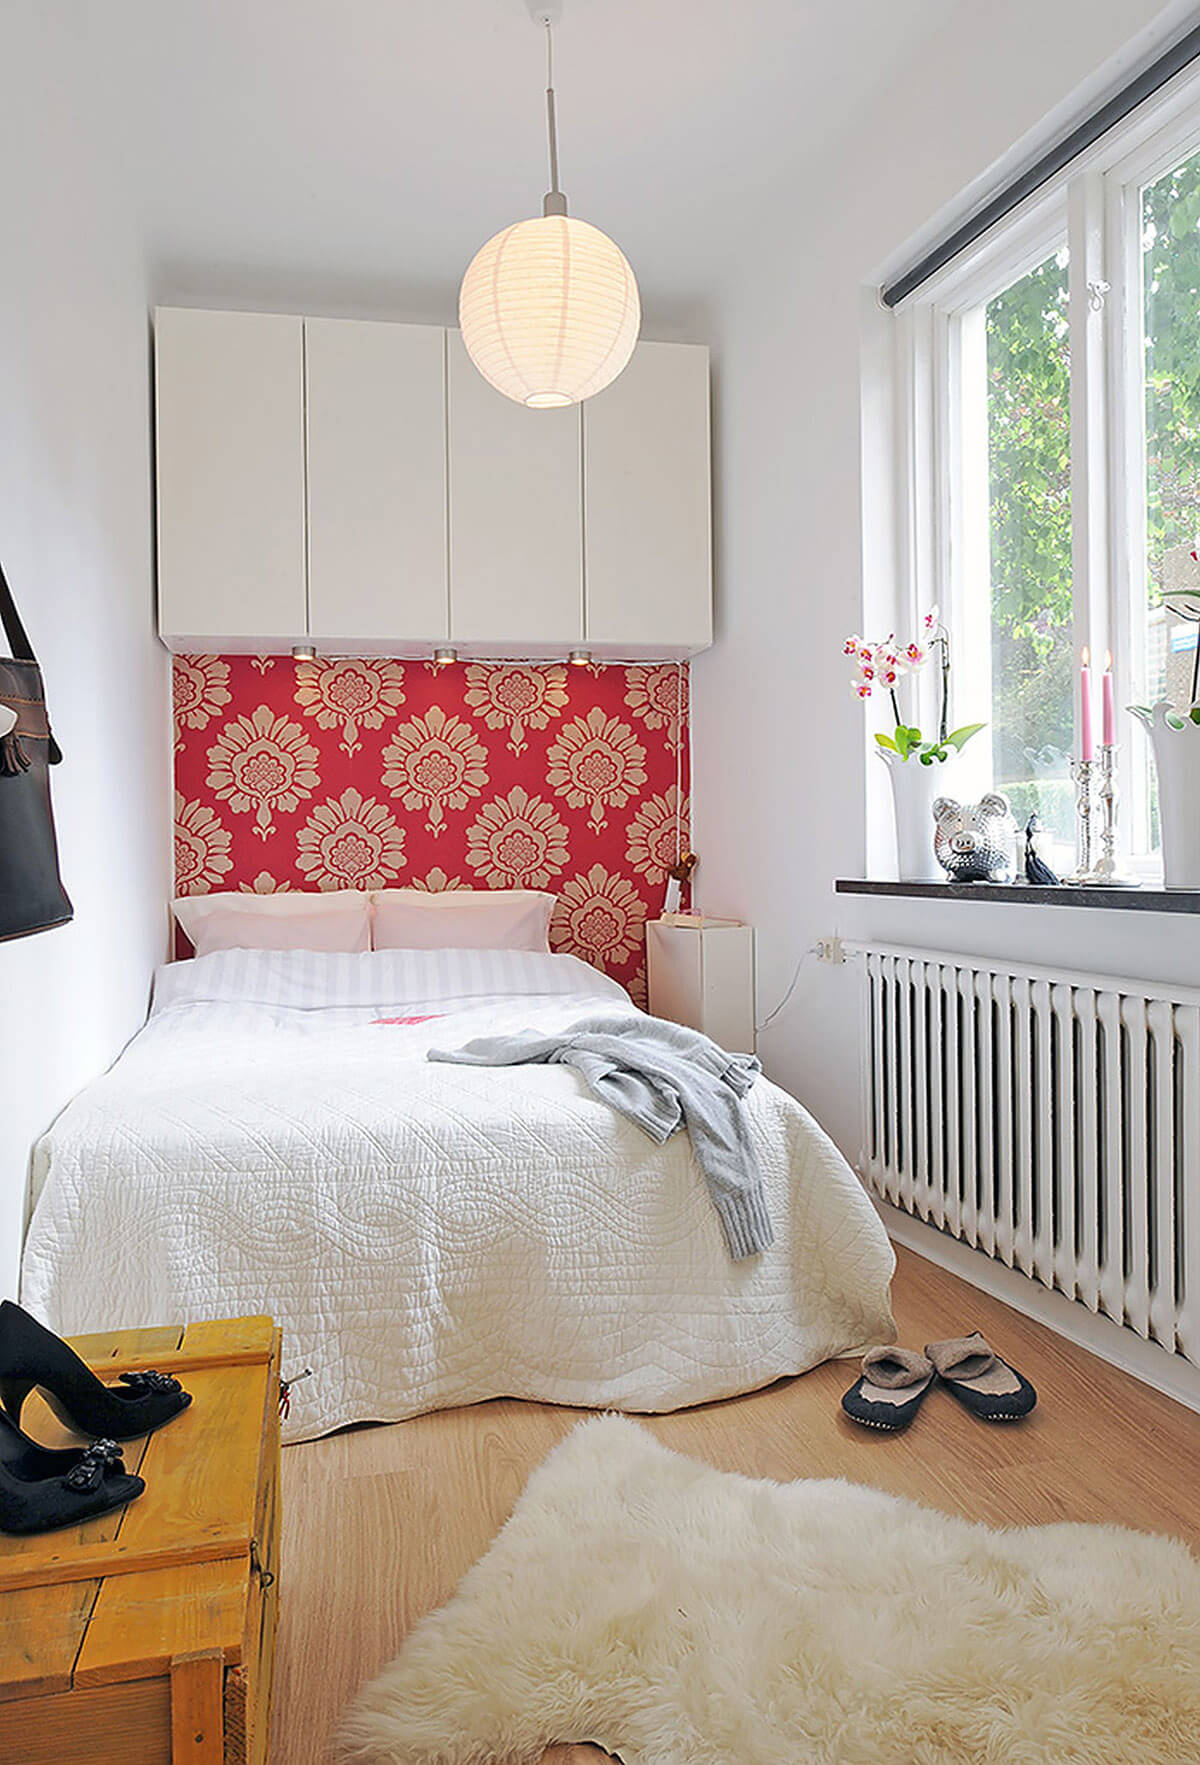 37 Best Small Bedroom Ideas and Designs for 2020 on Room Decore  id=70195